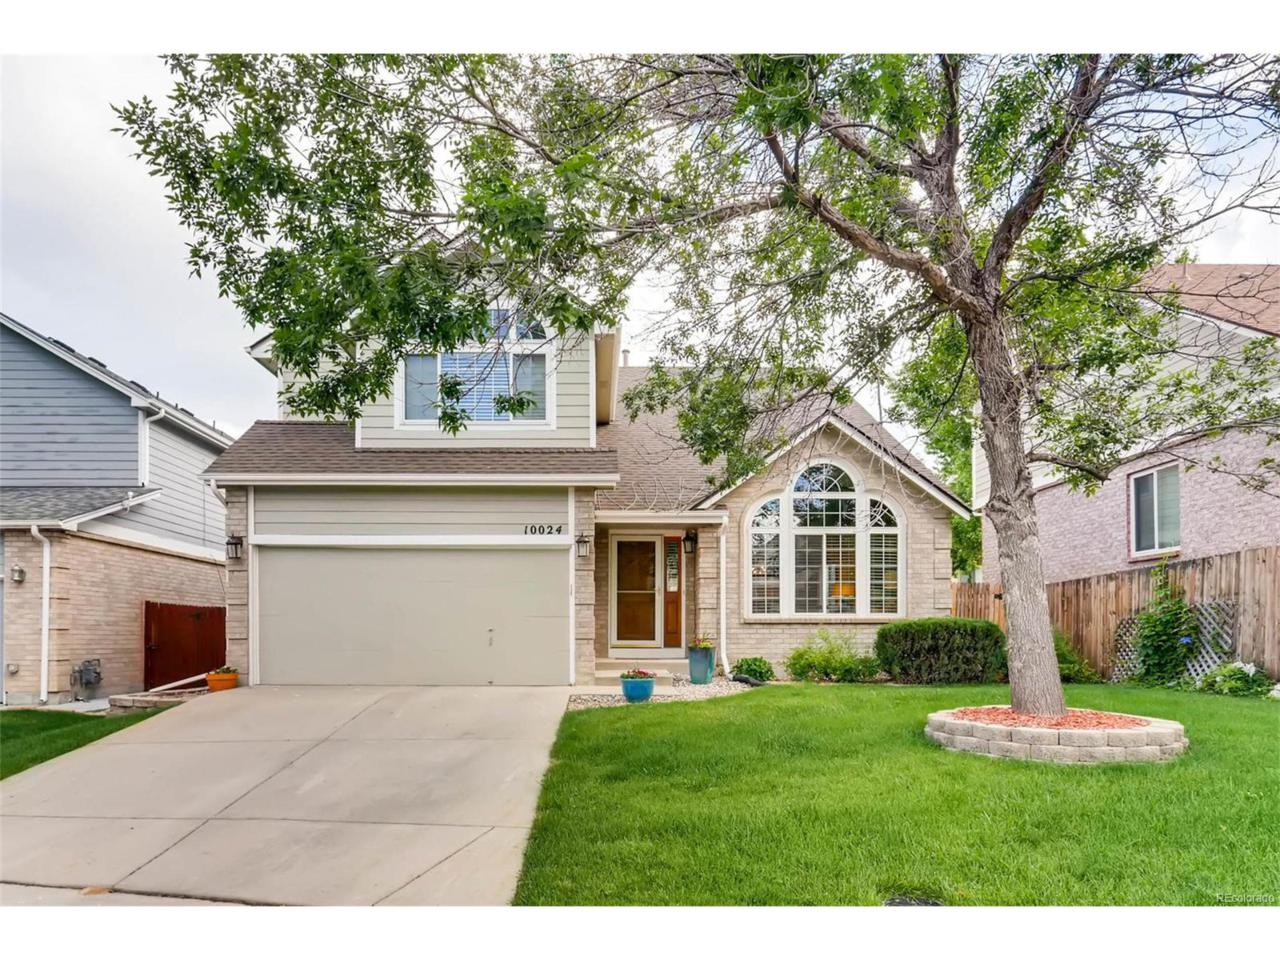 10024 W 81st Circle, Arvada, CO 80005 (MLS #6519475) :: 8z Real Estate